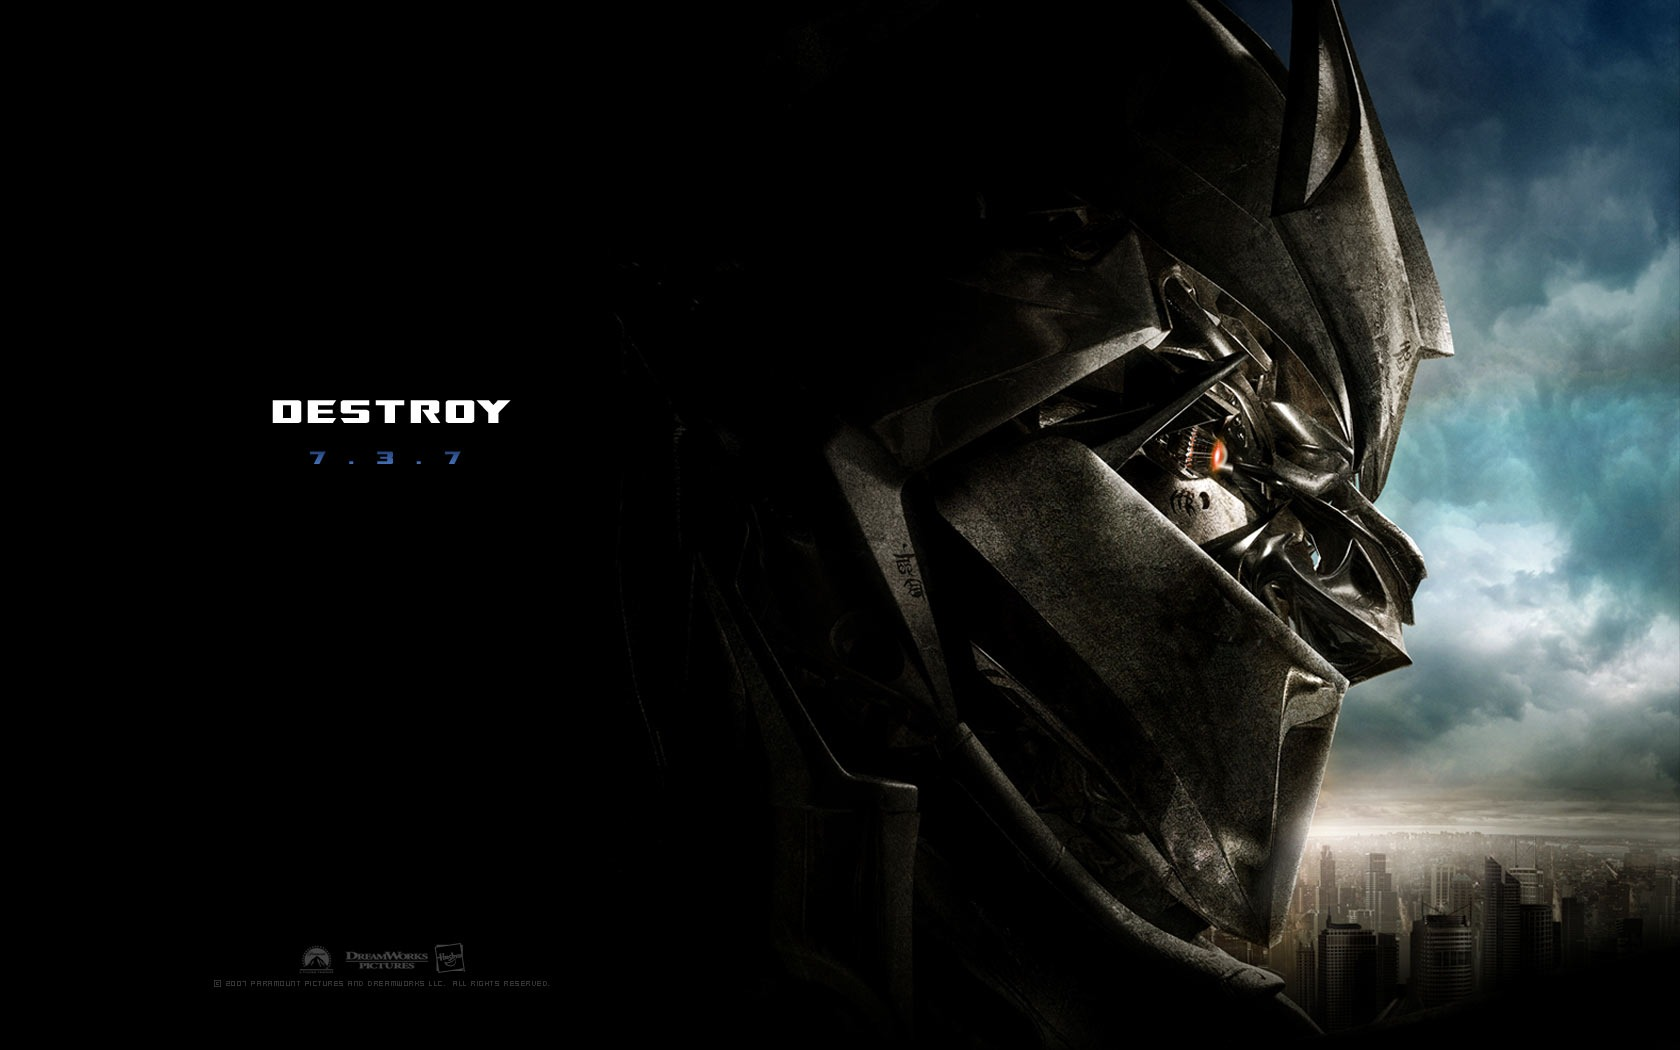 destroy wallpaper transformers movies wallpapers in jpg format for